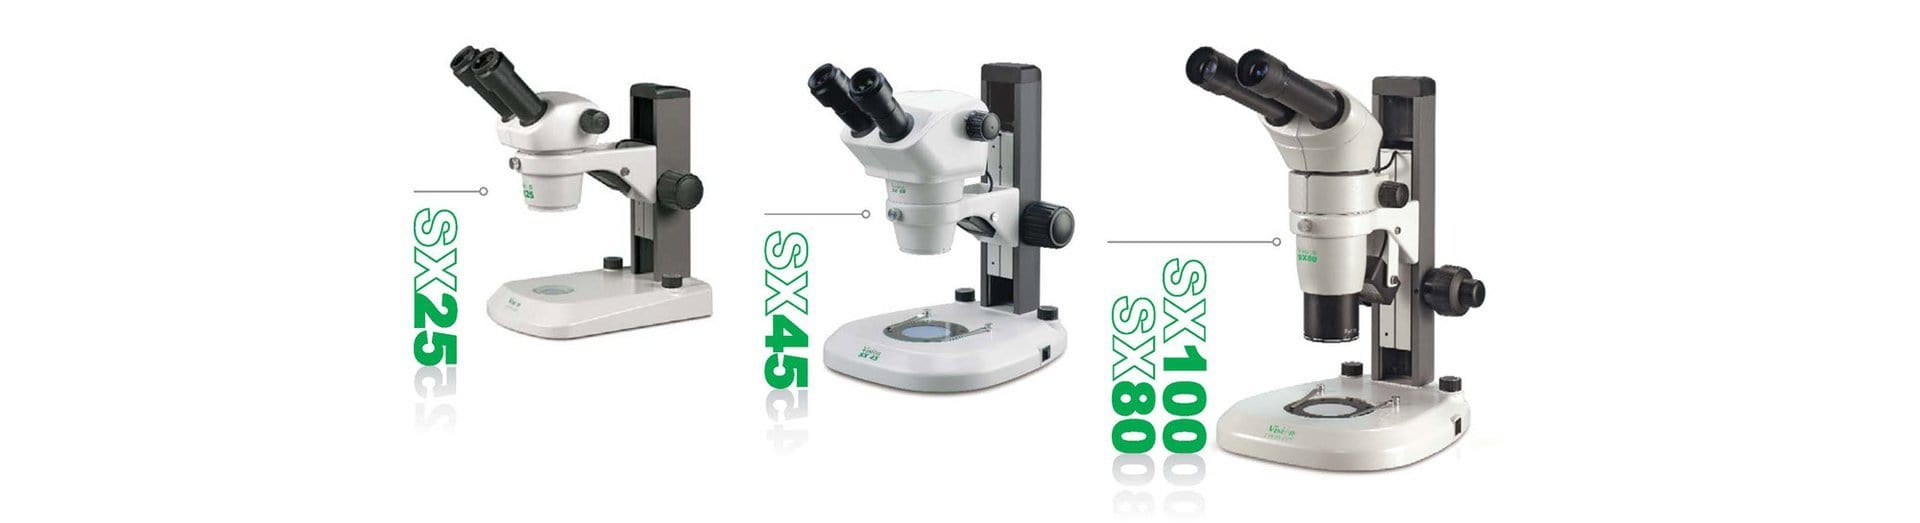 SX Vision Eng microscope